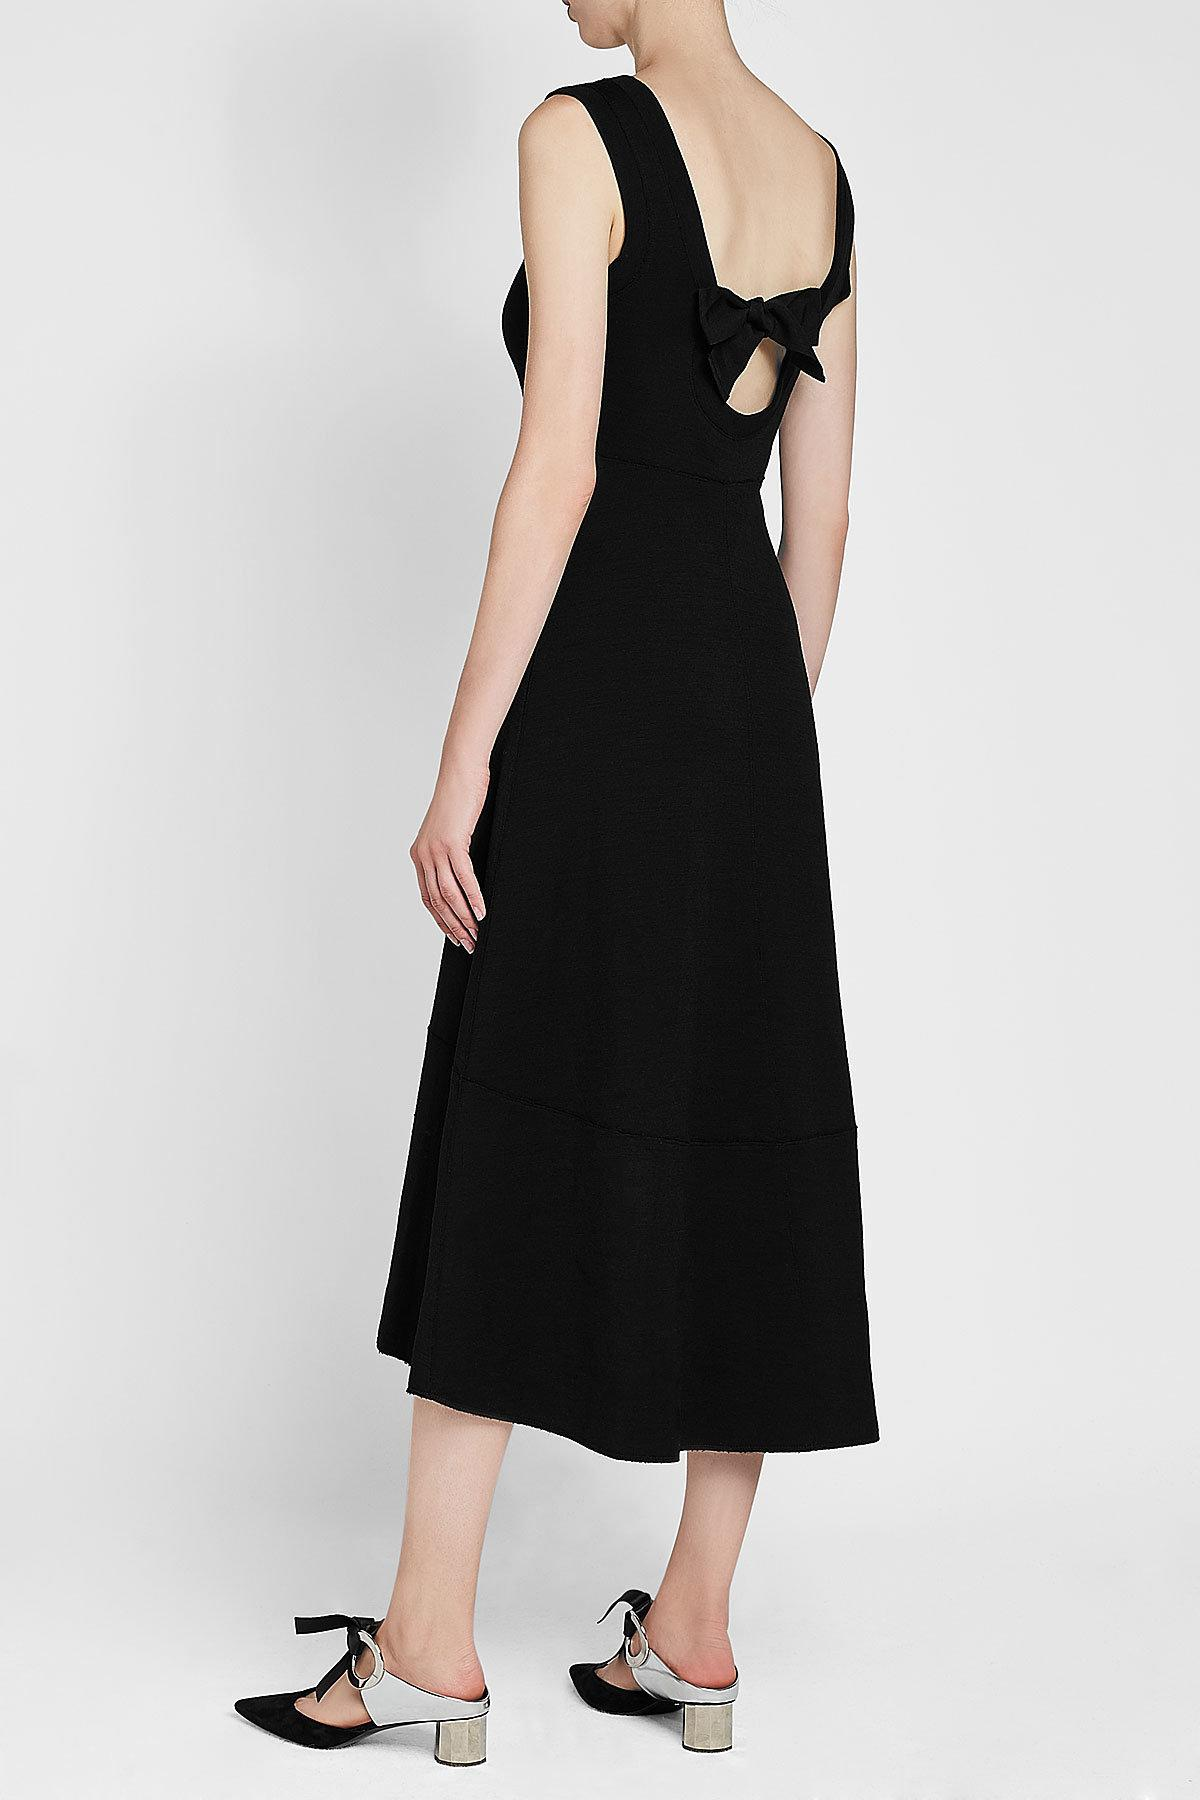 802bb97a9d92 Proenza Schouler Midi Dress With Wool And Cotton in Black - Lyst